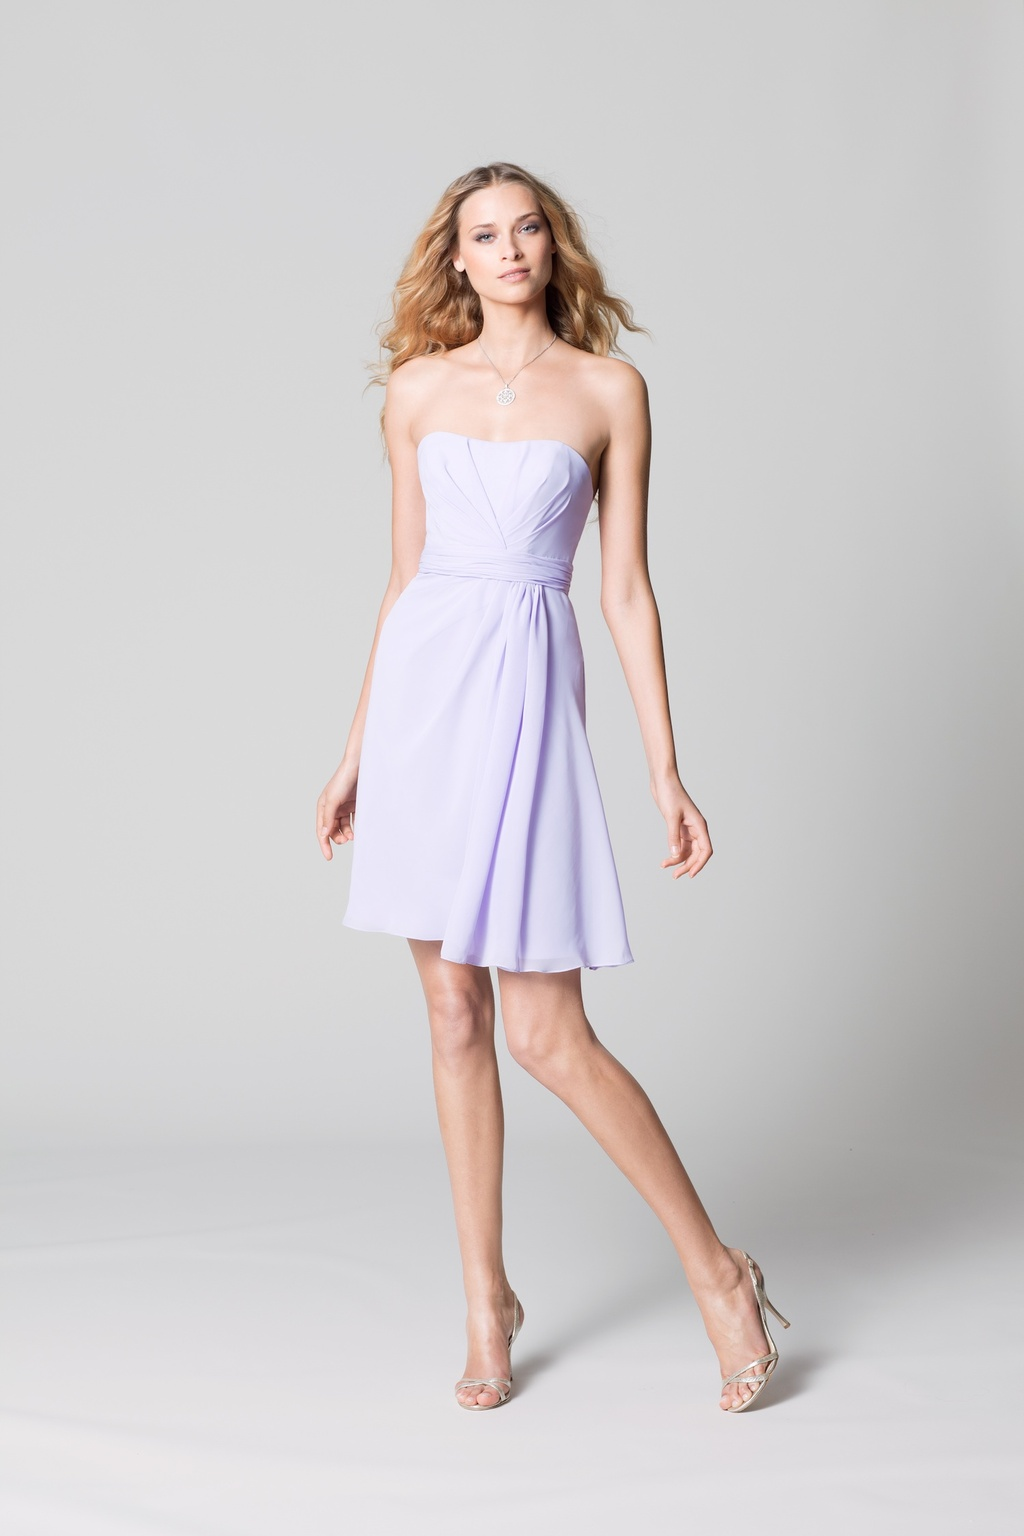 Affordable-bridesmaids-dresses-fall-2012-wtoo-by-watters-bridal-party-soft-lilac.original.full